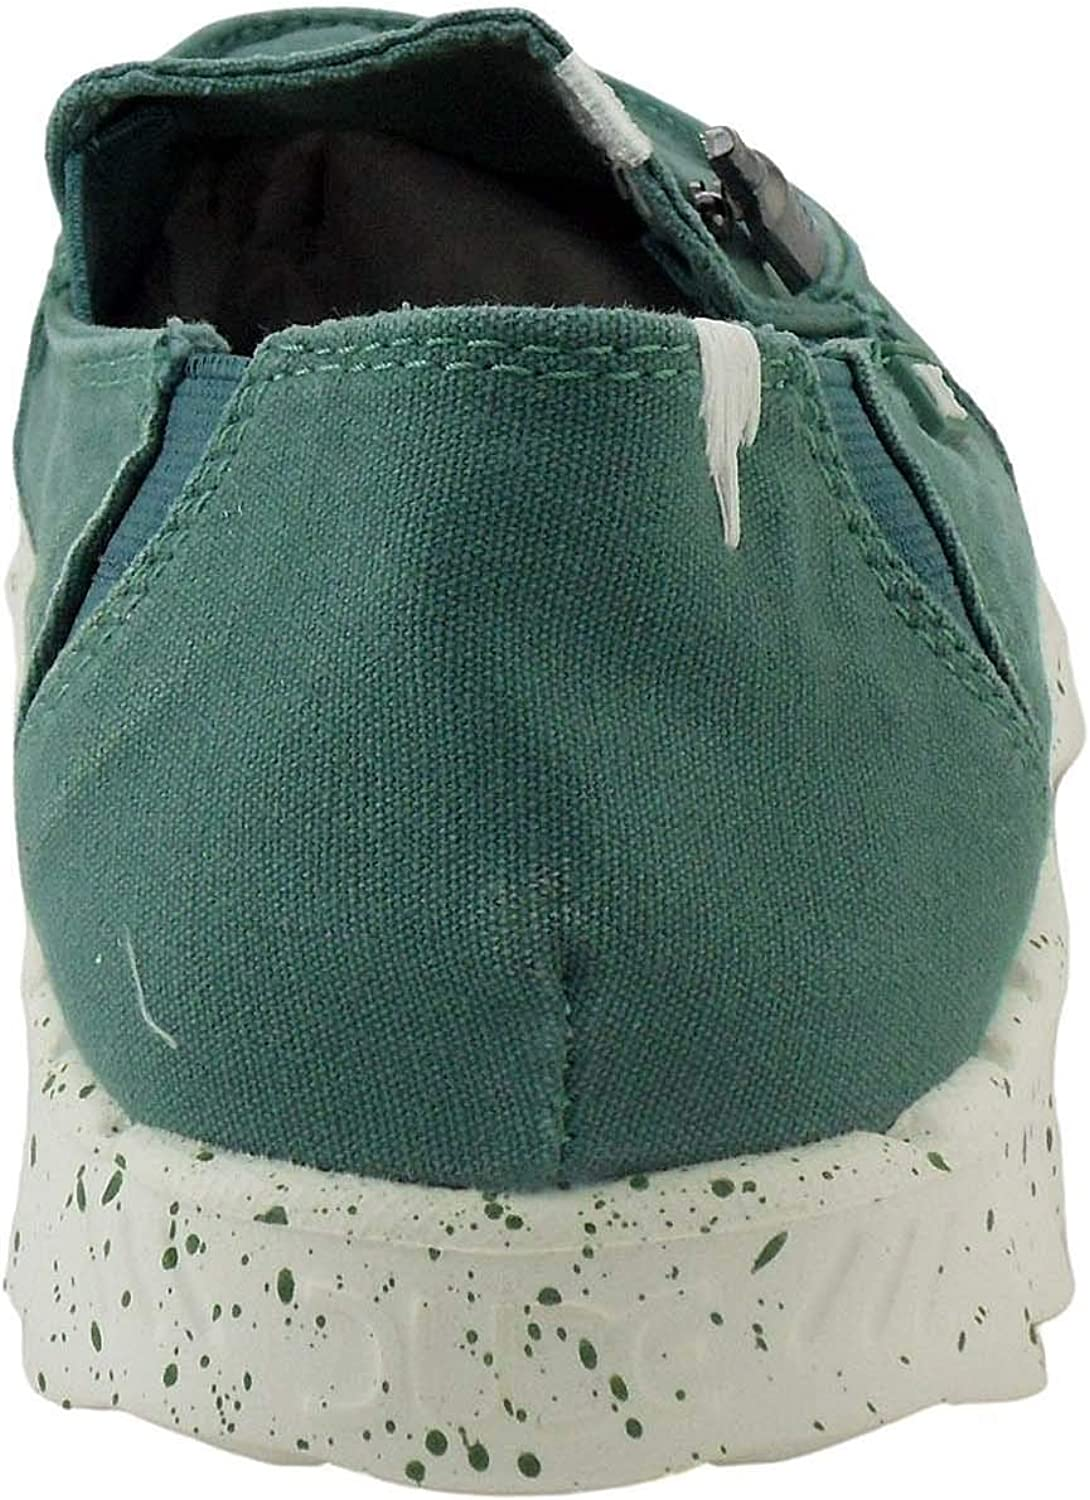 Dude Mocassins Farty Washed-3 Coloris- Teal